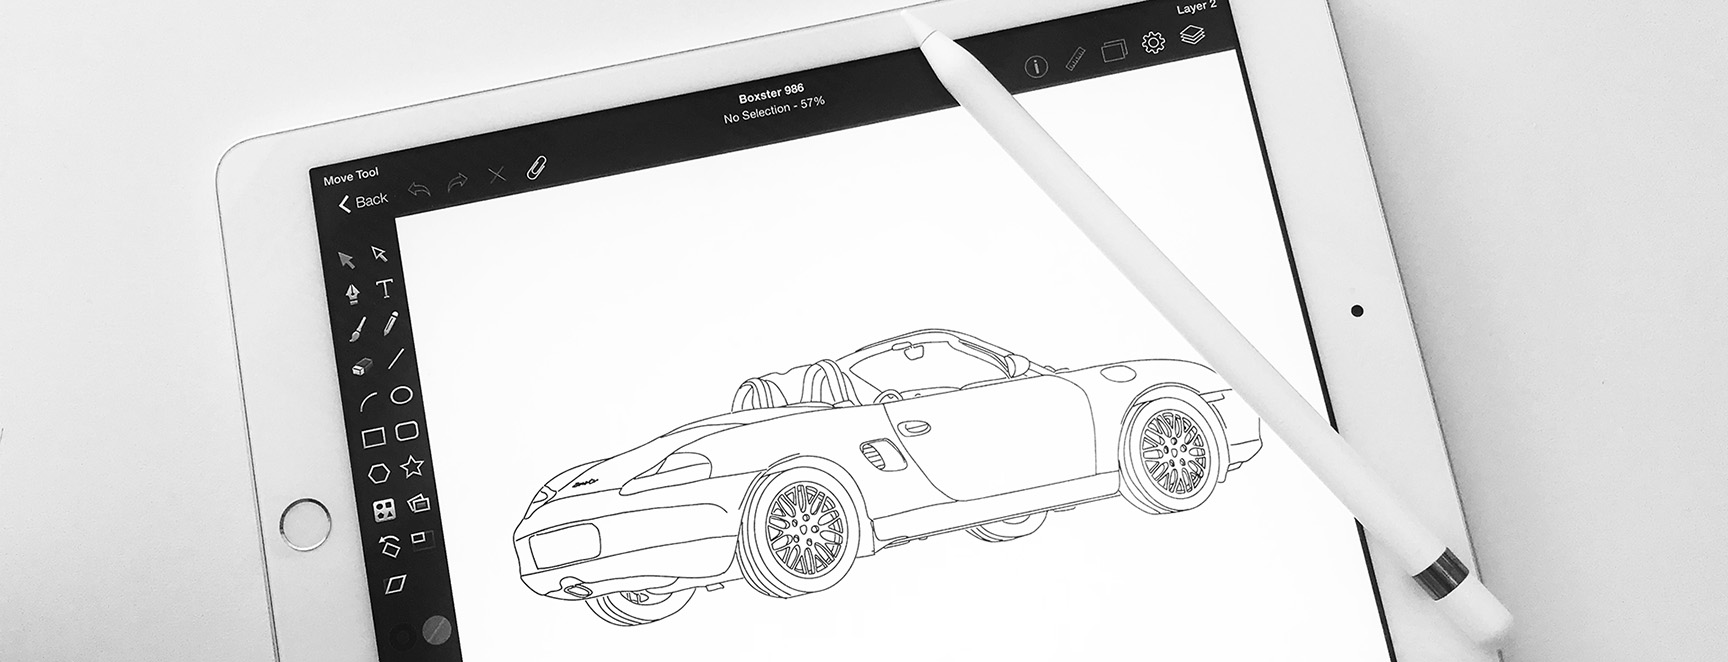 Porsche artwork and drawings